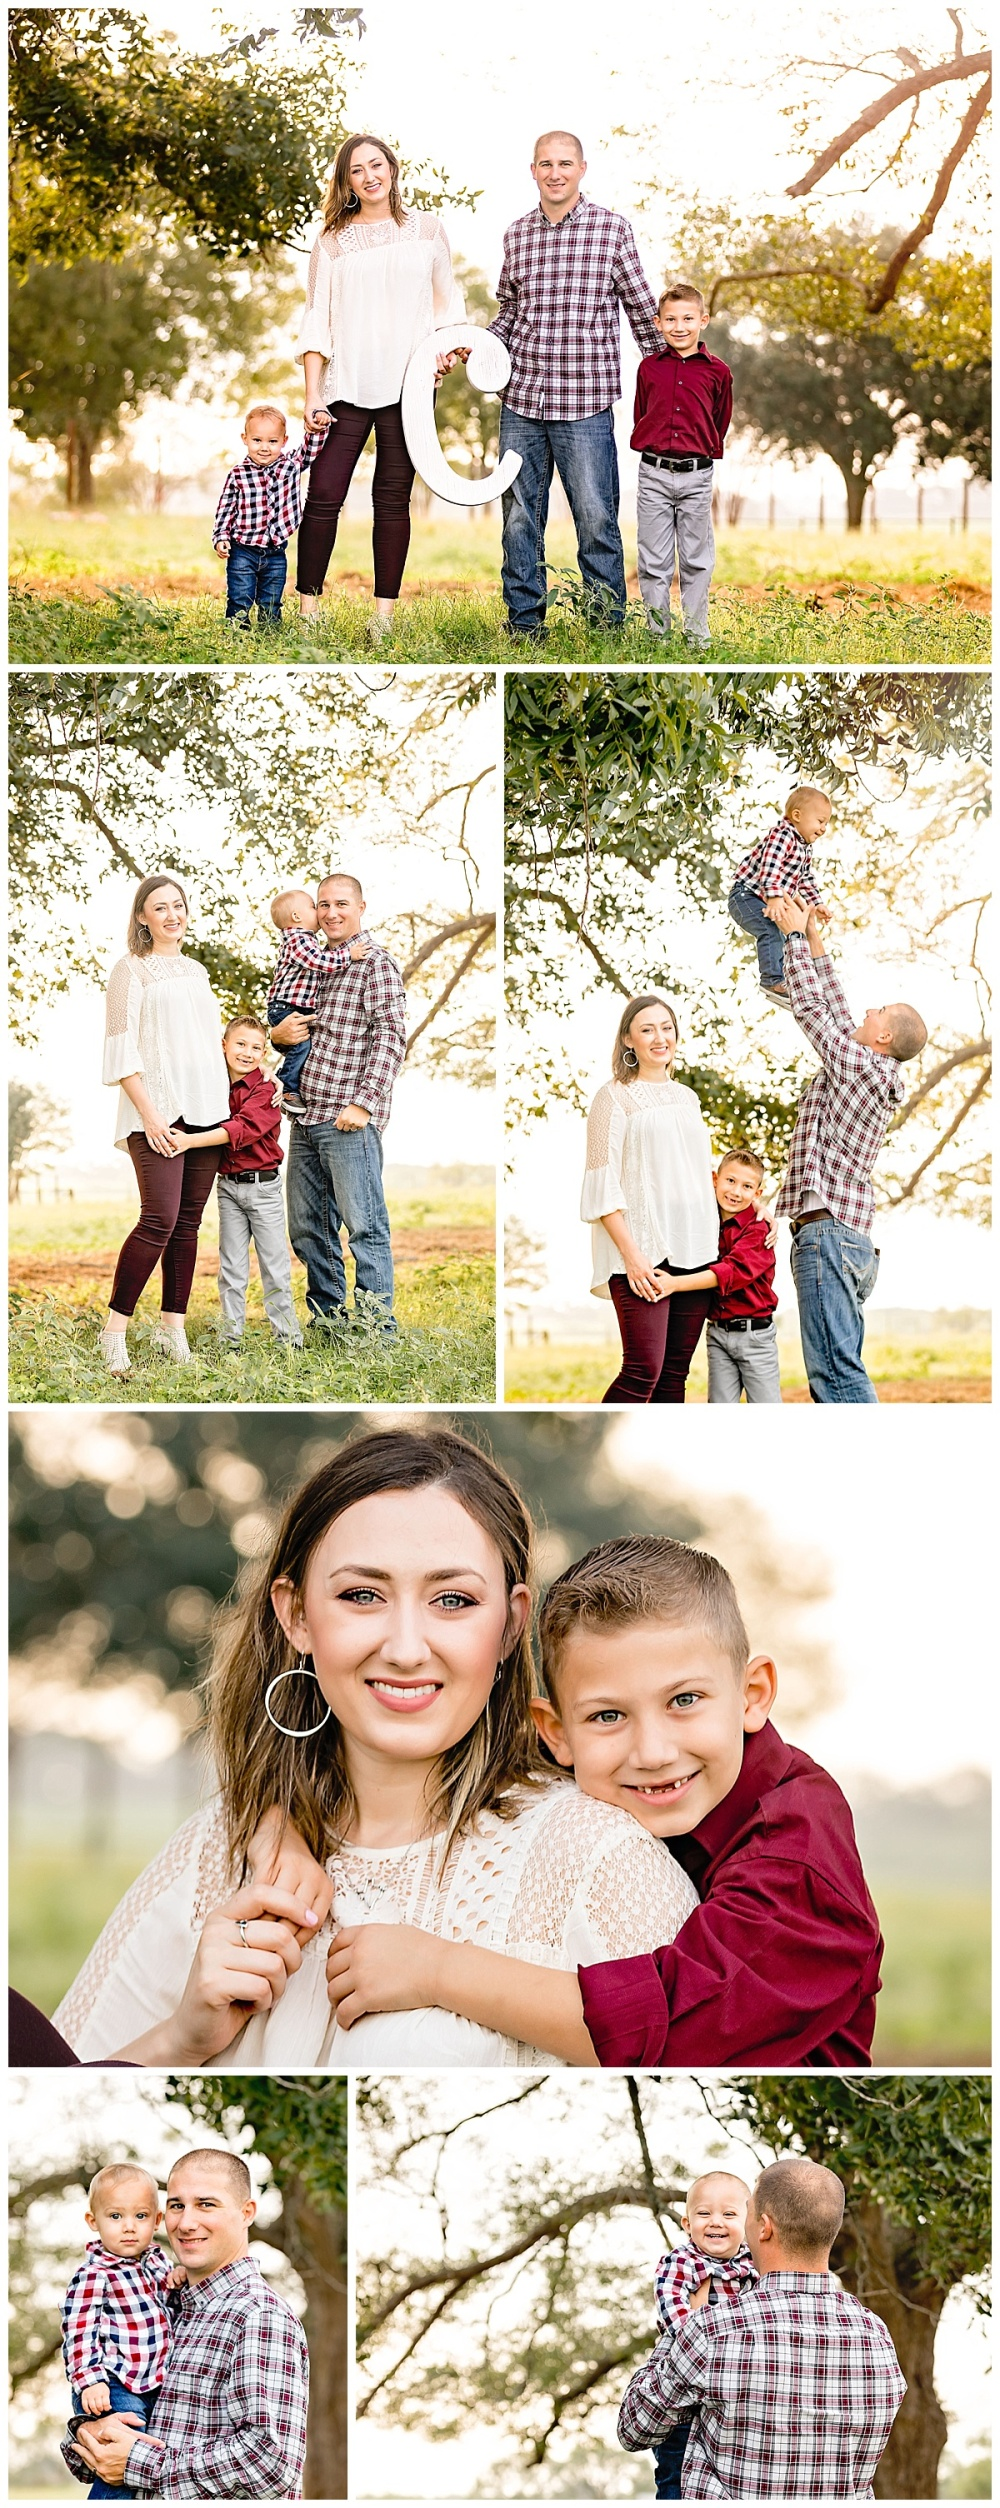 Family-Photographer-LaVernia-Texas-Fall-Carly-Barton-Photography_0011.jpg